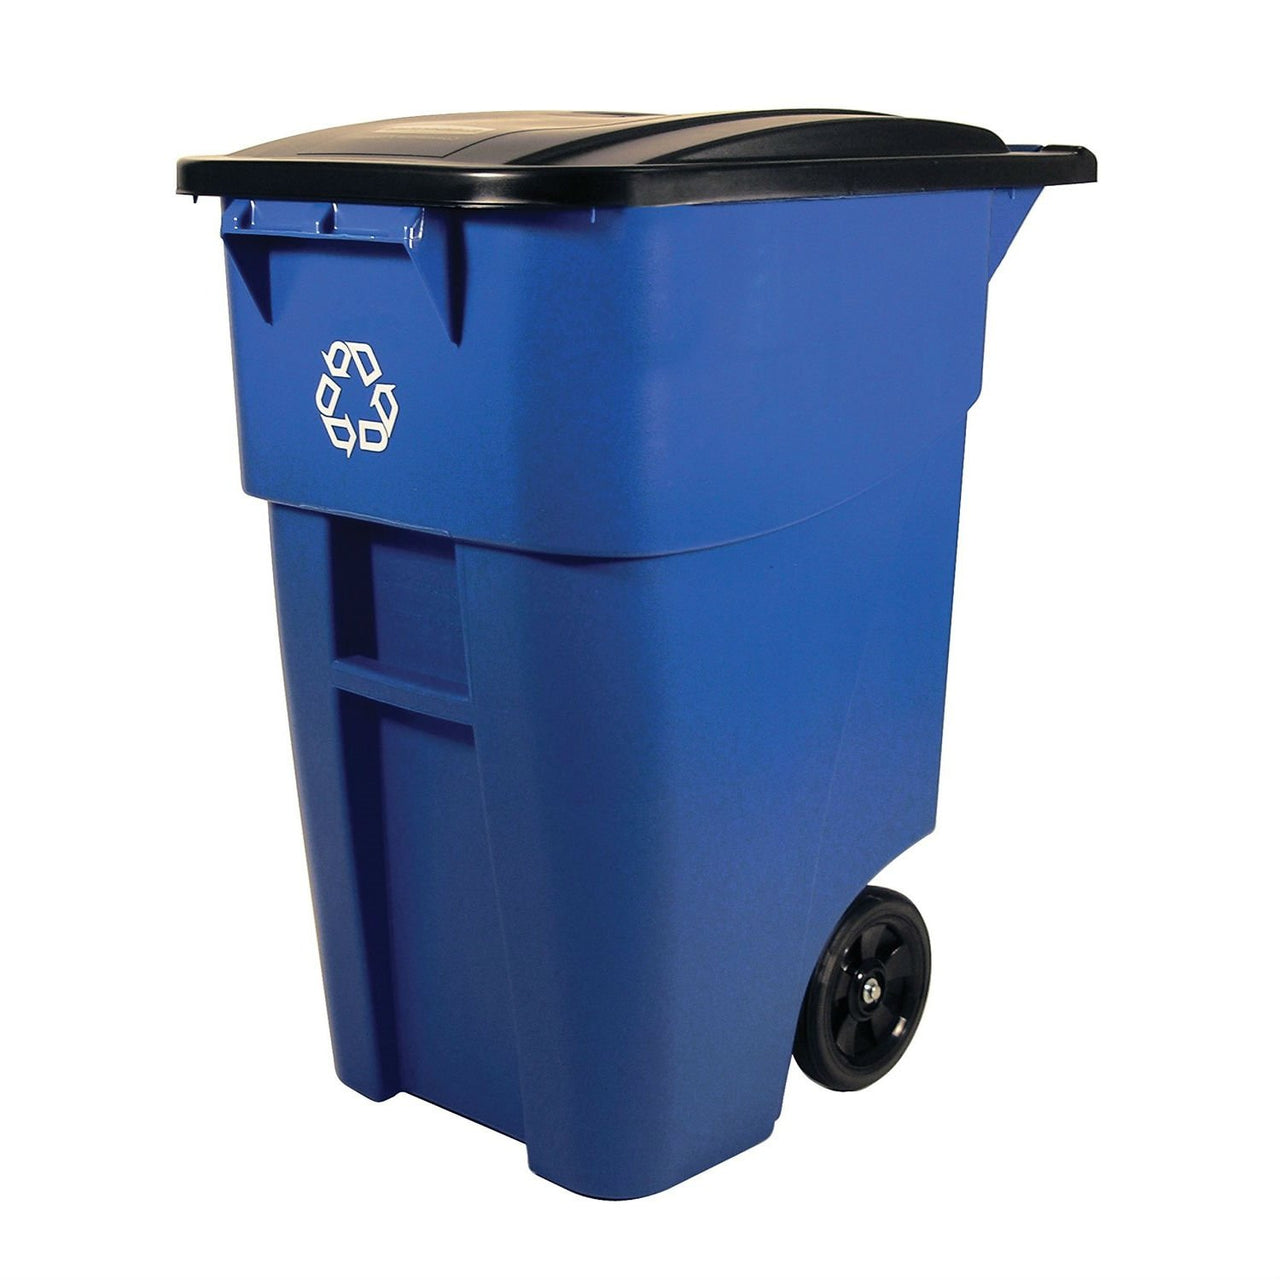 50 Gallon Blue Commercial Heavy-Duty Rollout Recycler Trash Can